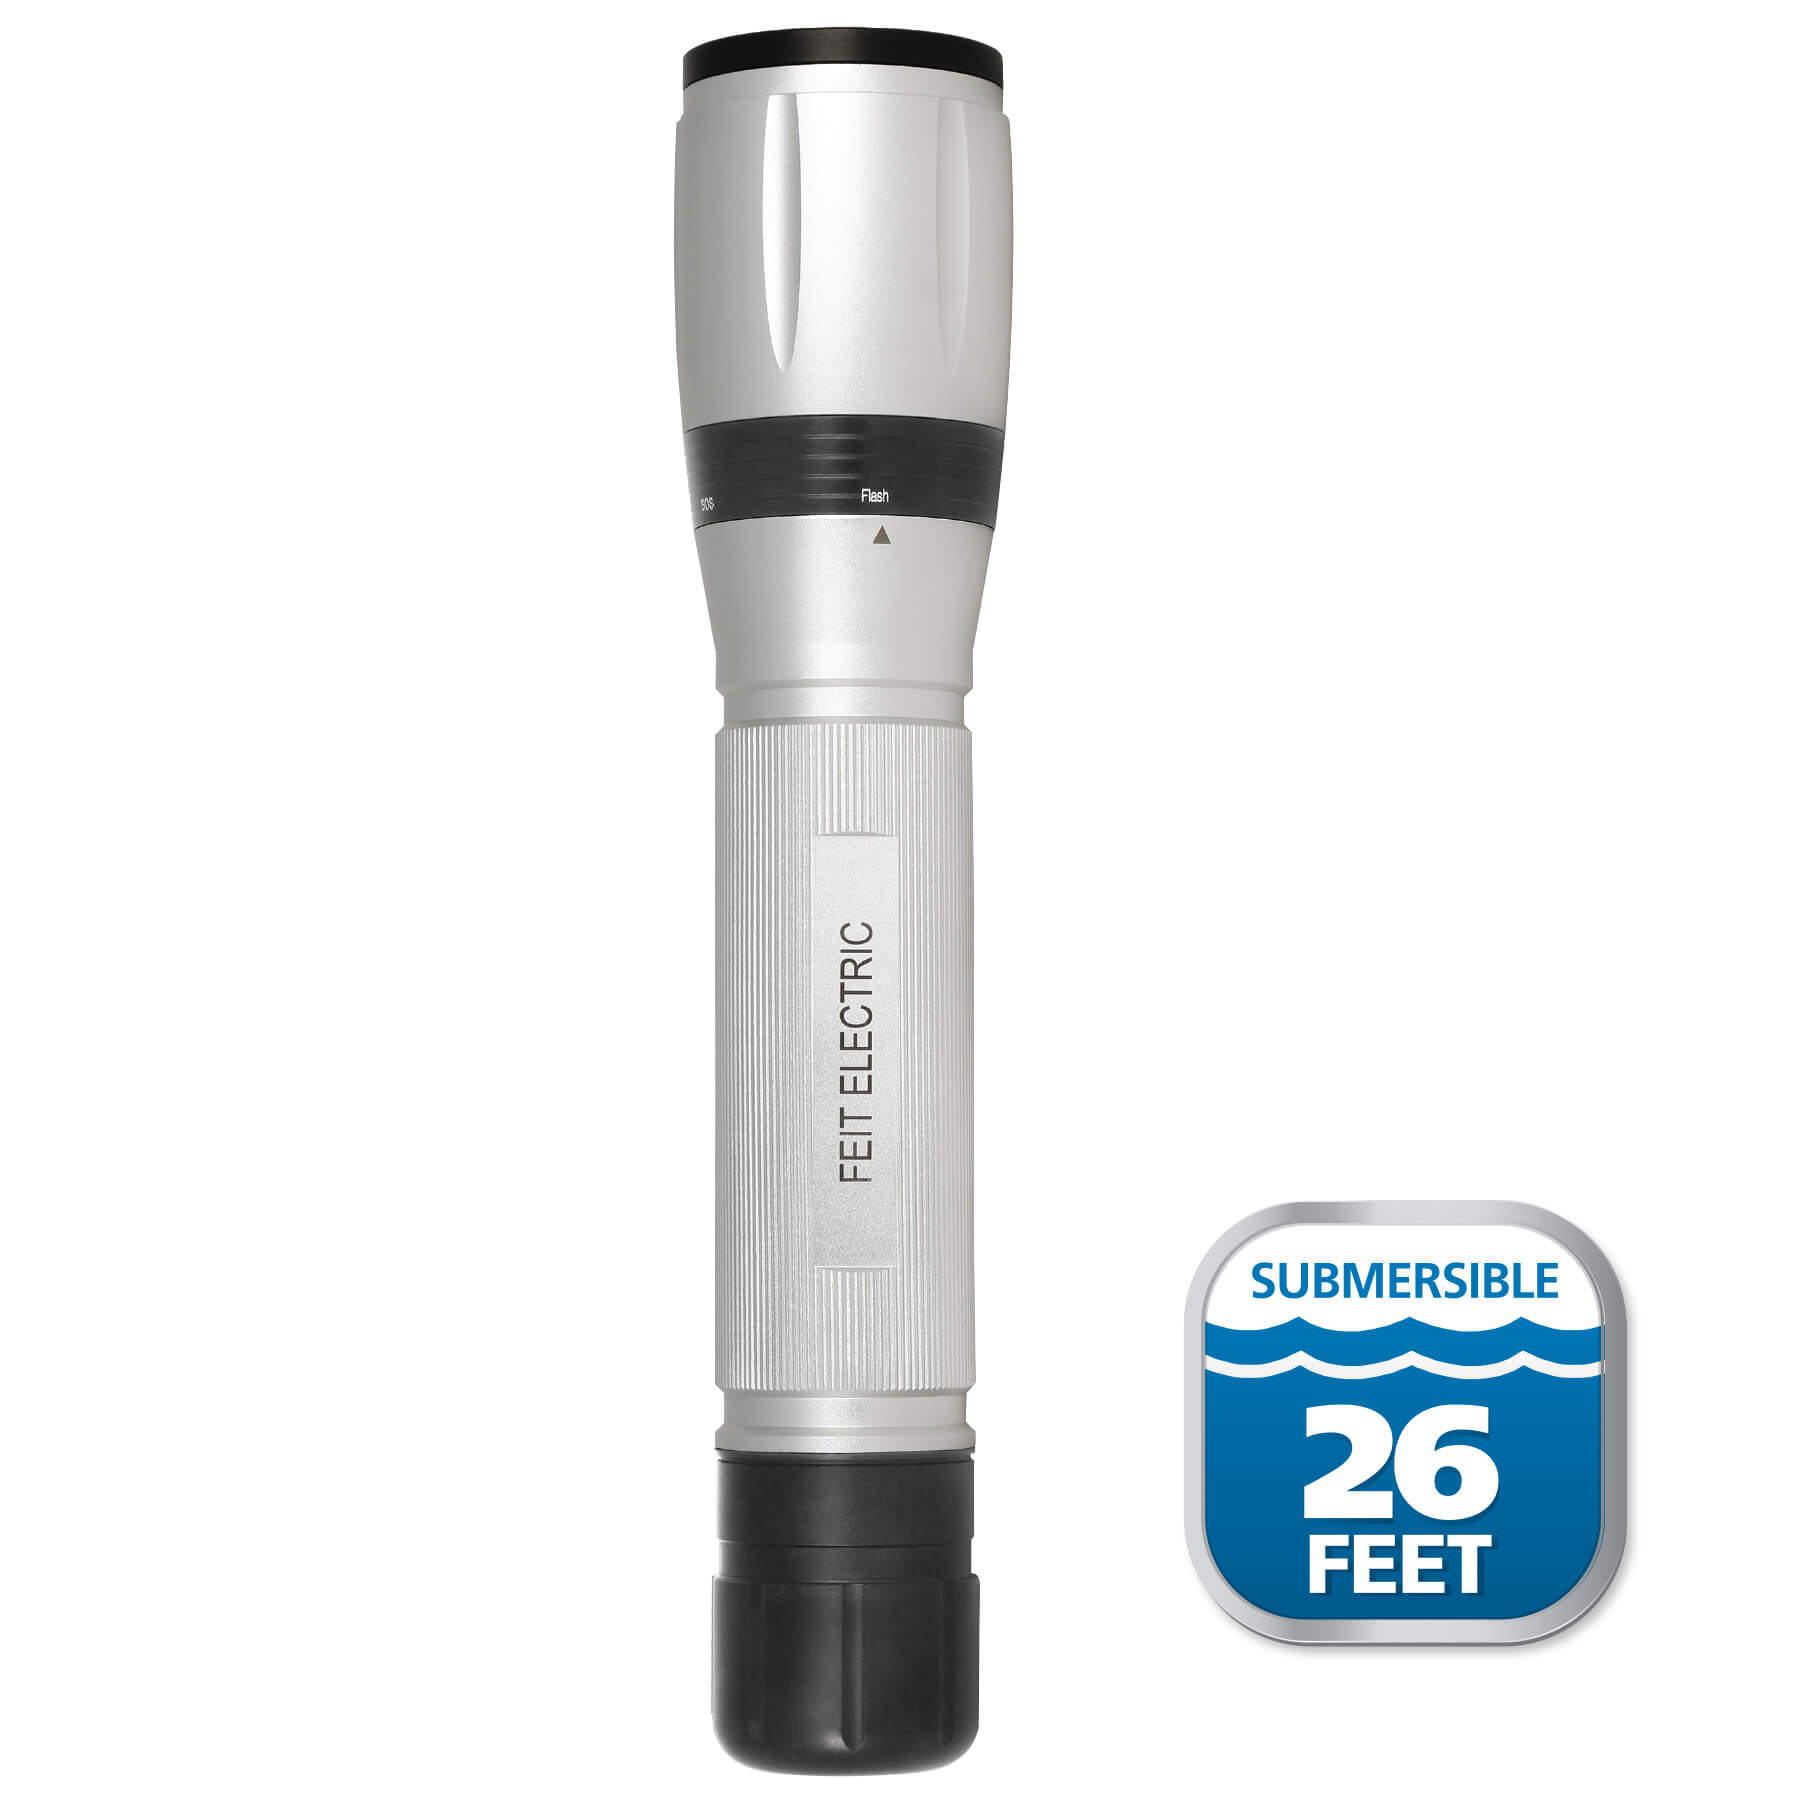 hight resolution of 750 lumen led submersible high performance flashlight